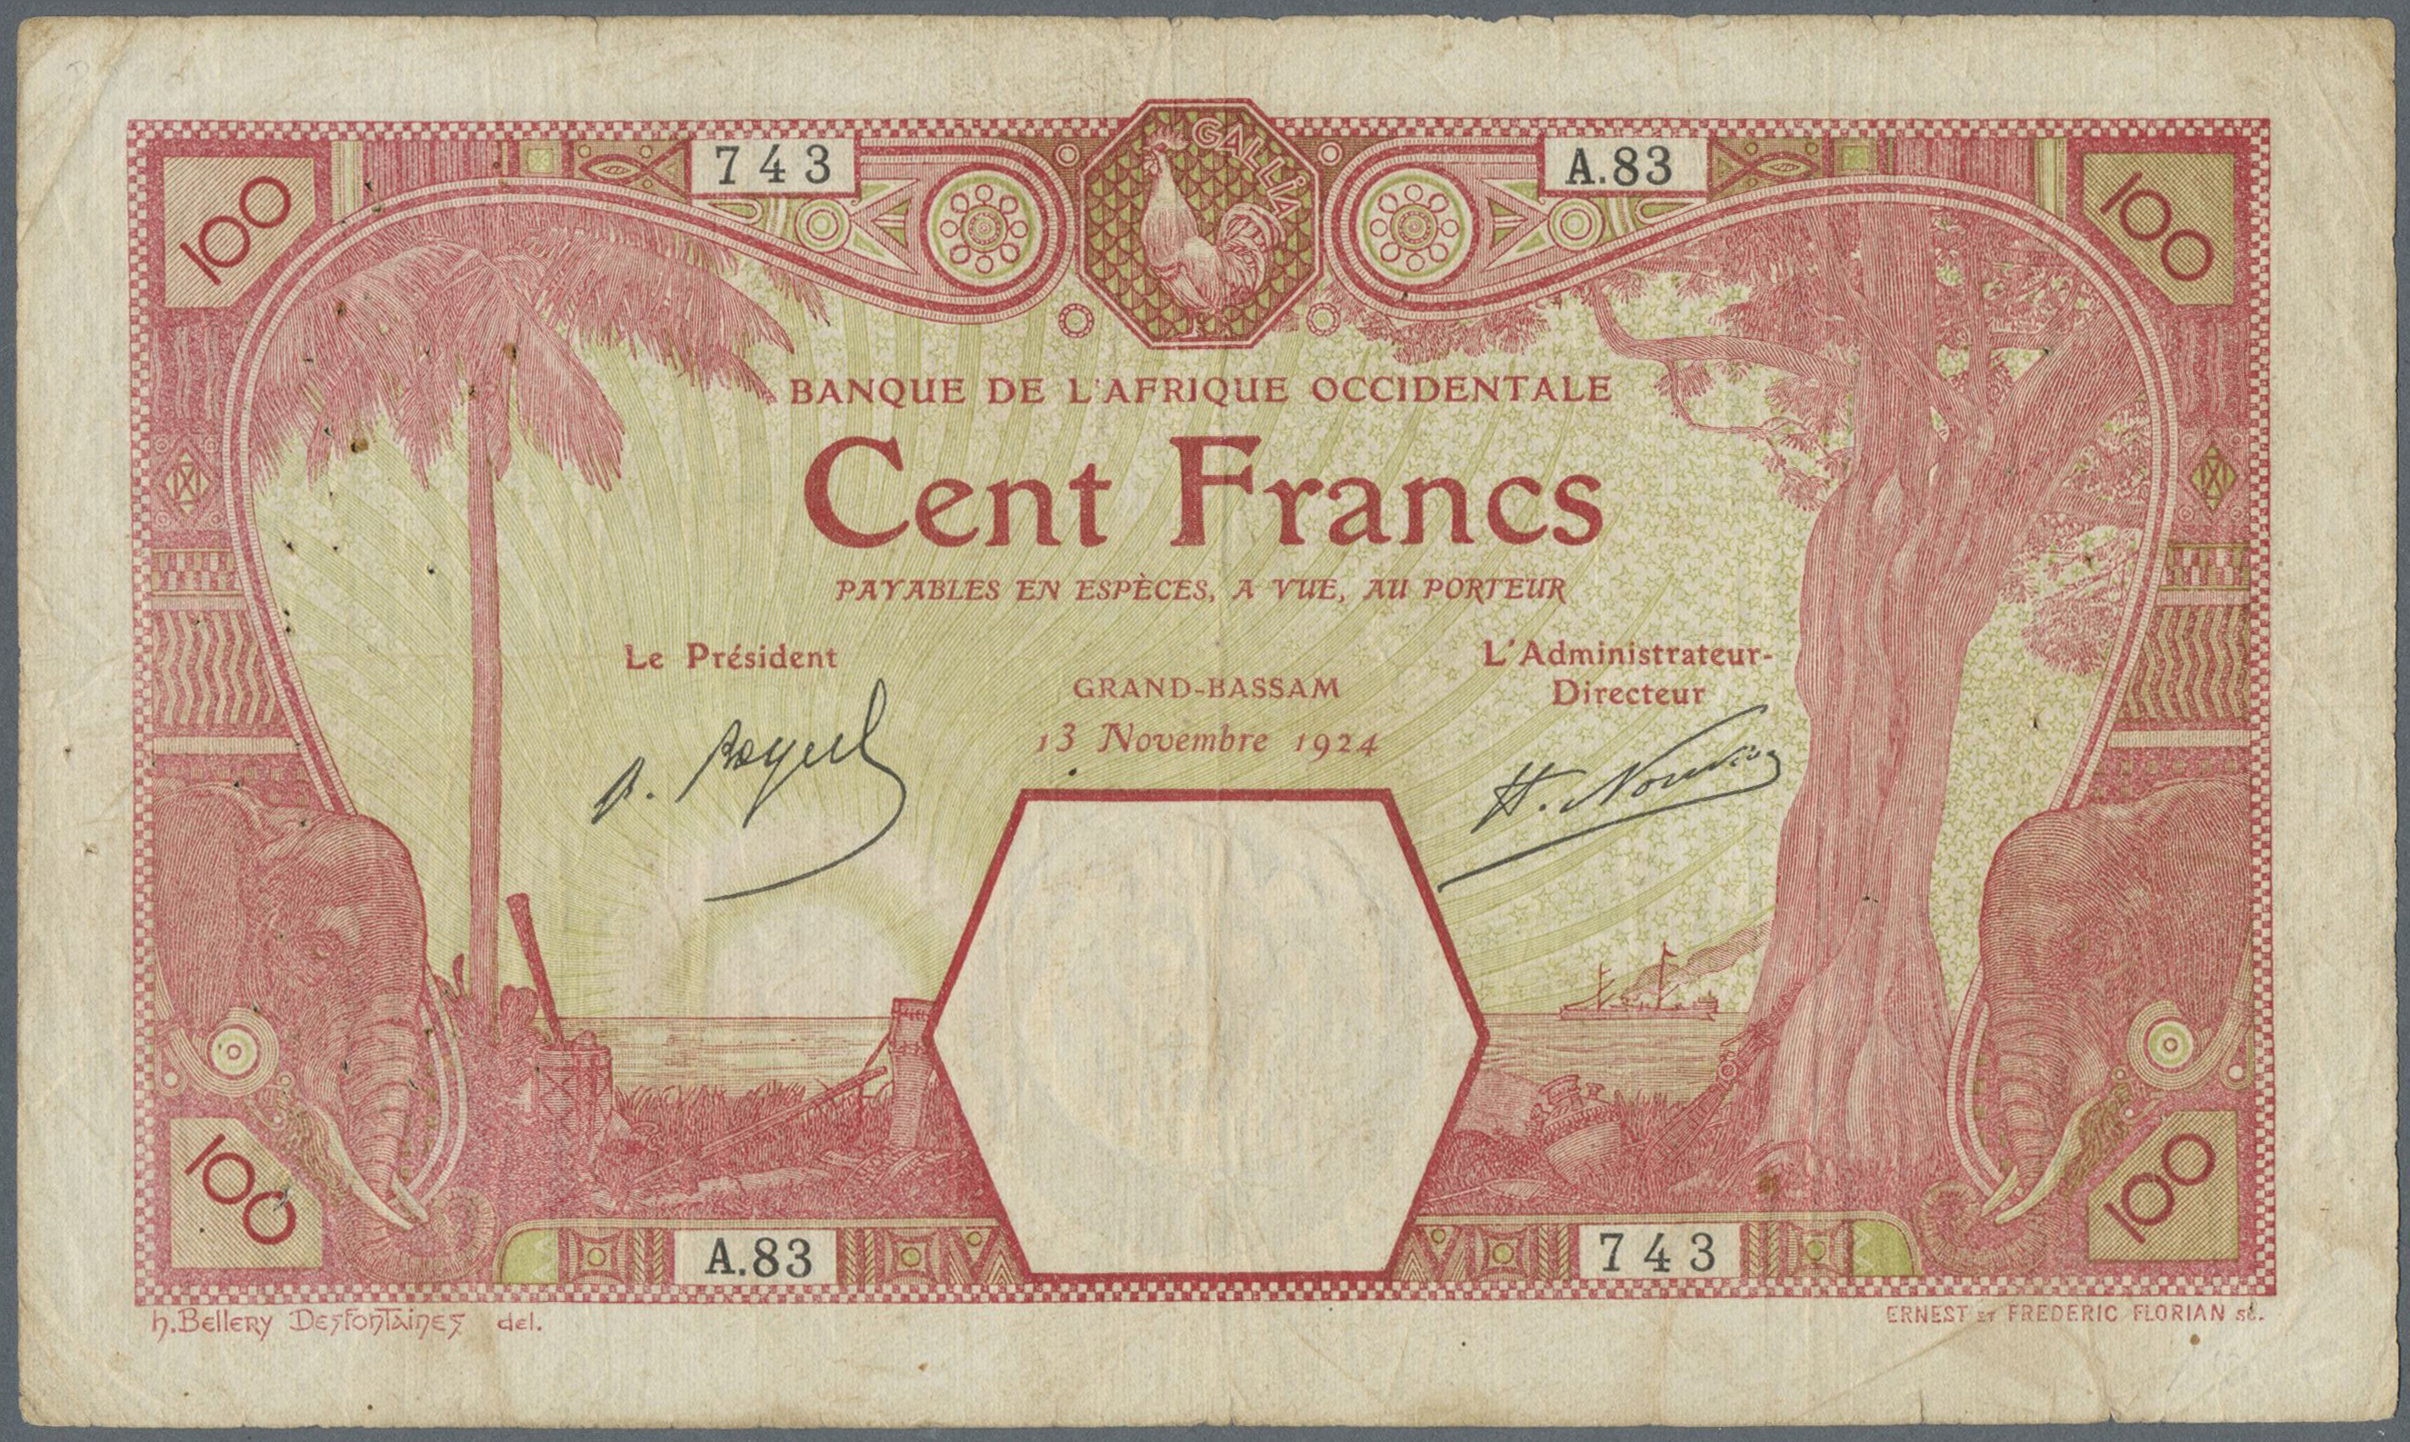 Lot 00352 - French West Africa / Französisch Westafrika | Banknoten  -  Auktionshaus Christoph Gärtner GmbH & Co. KG Sale #48 The Banknotes